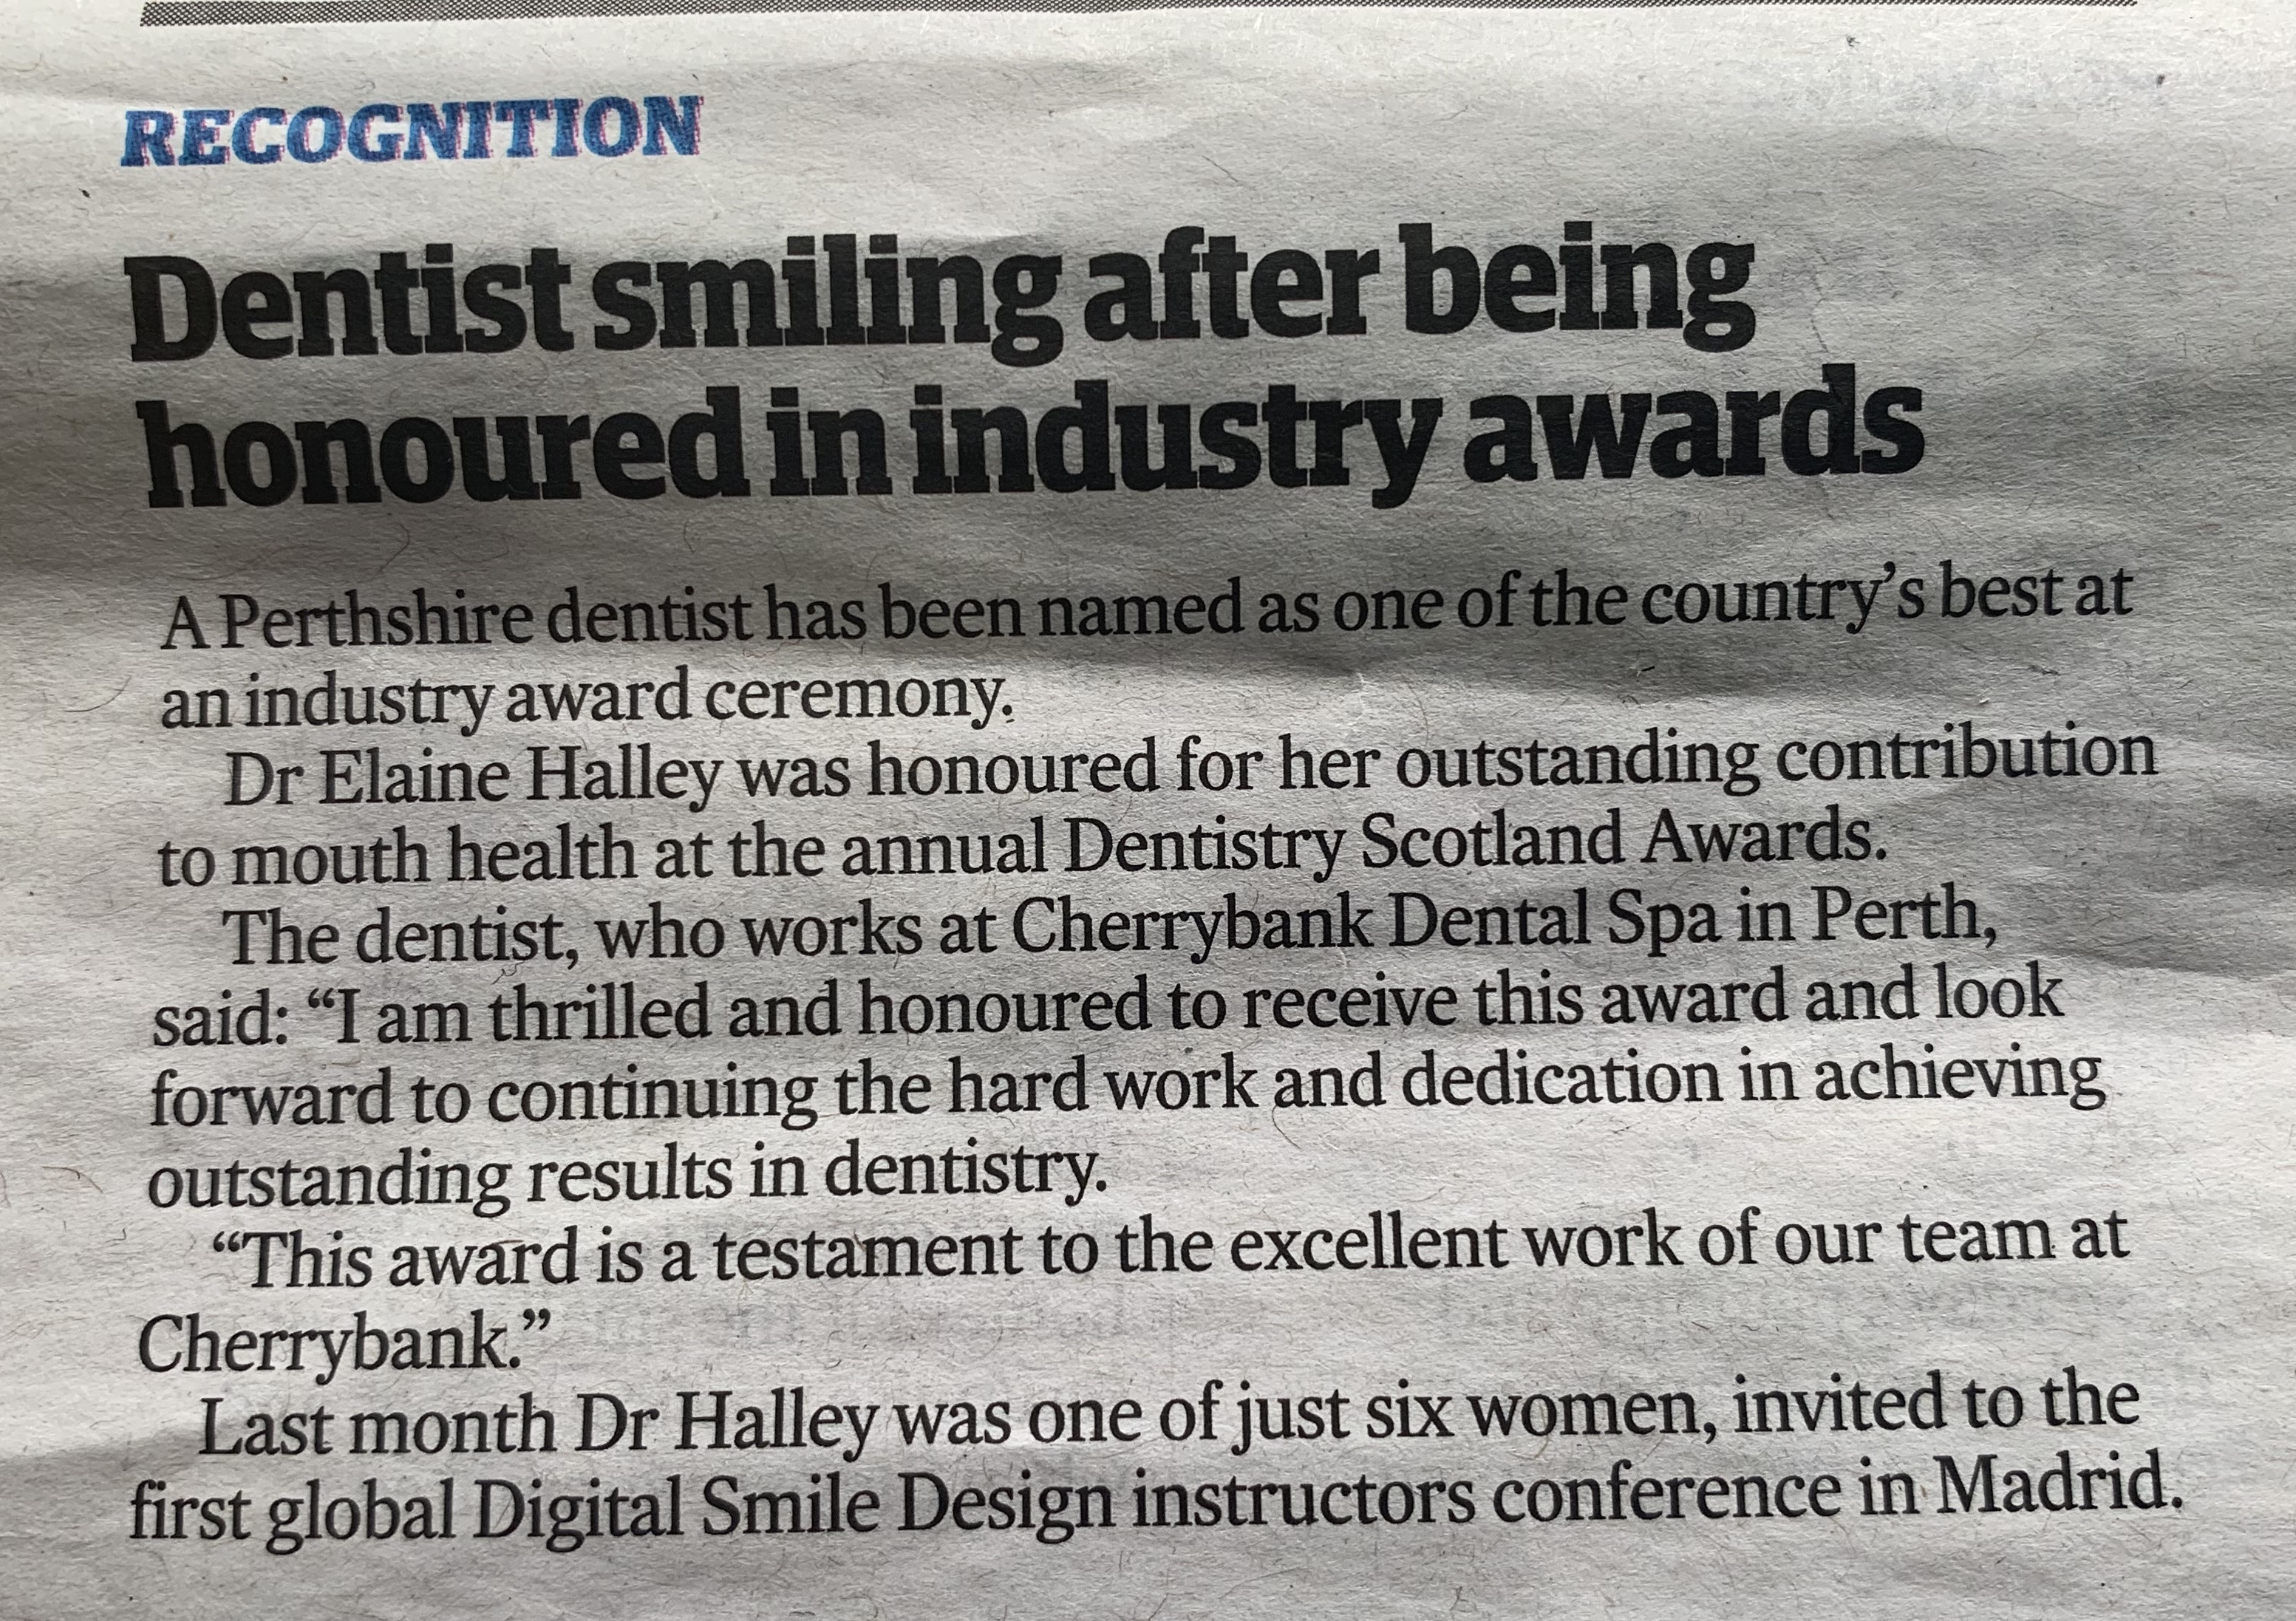 Dr Elaine Halley Wins Outstanding Contribution to Dentistry 2018 – at the Dentistry Scotland Awards